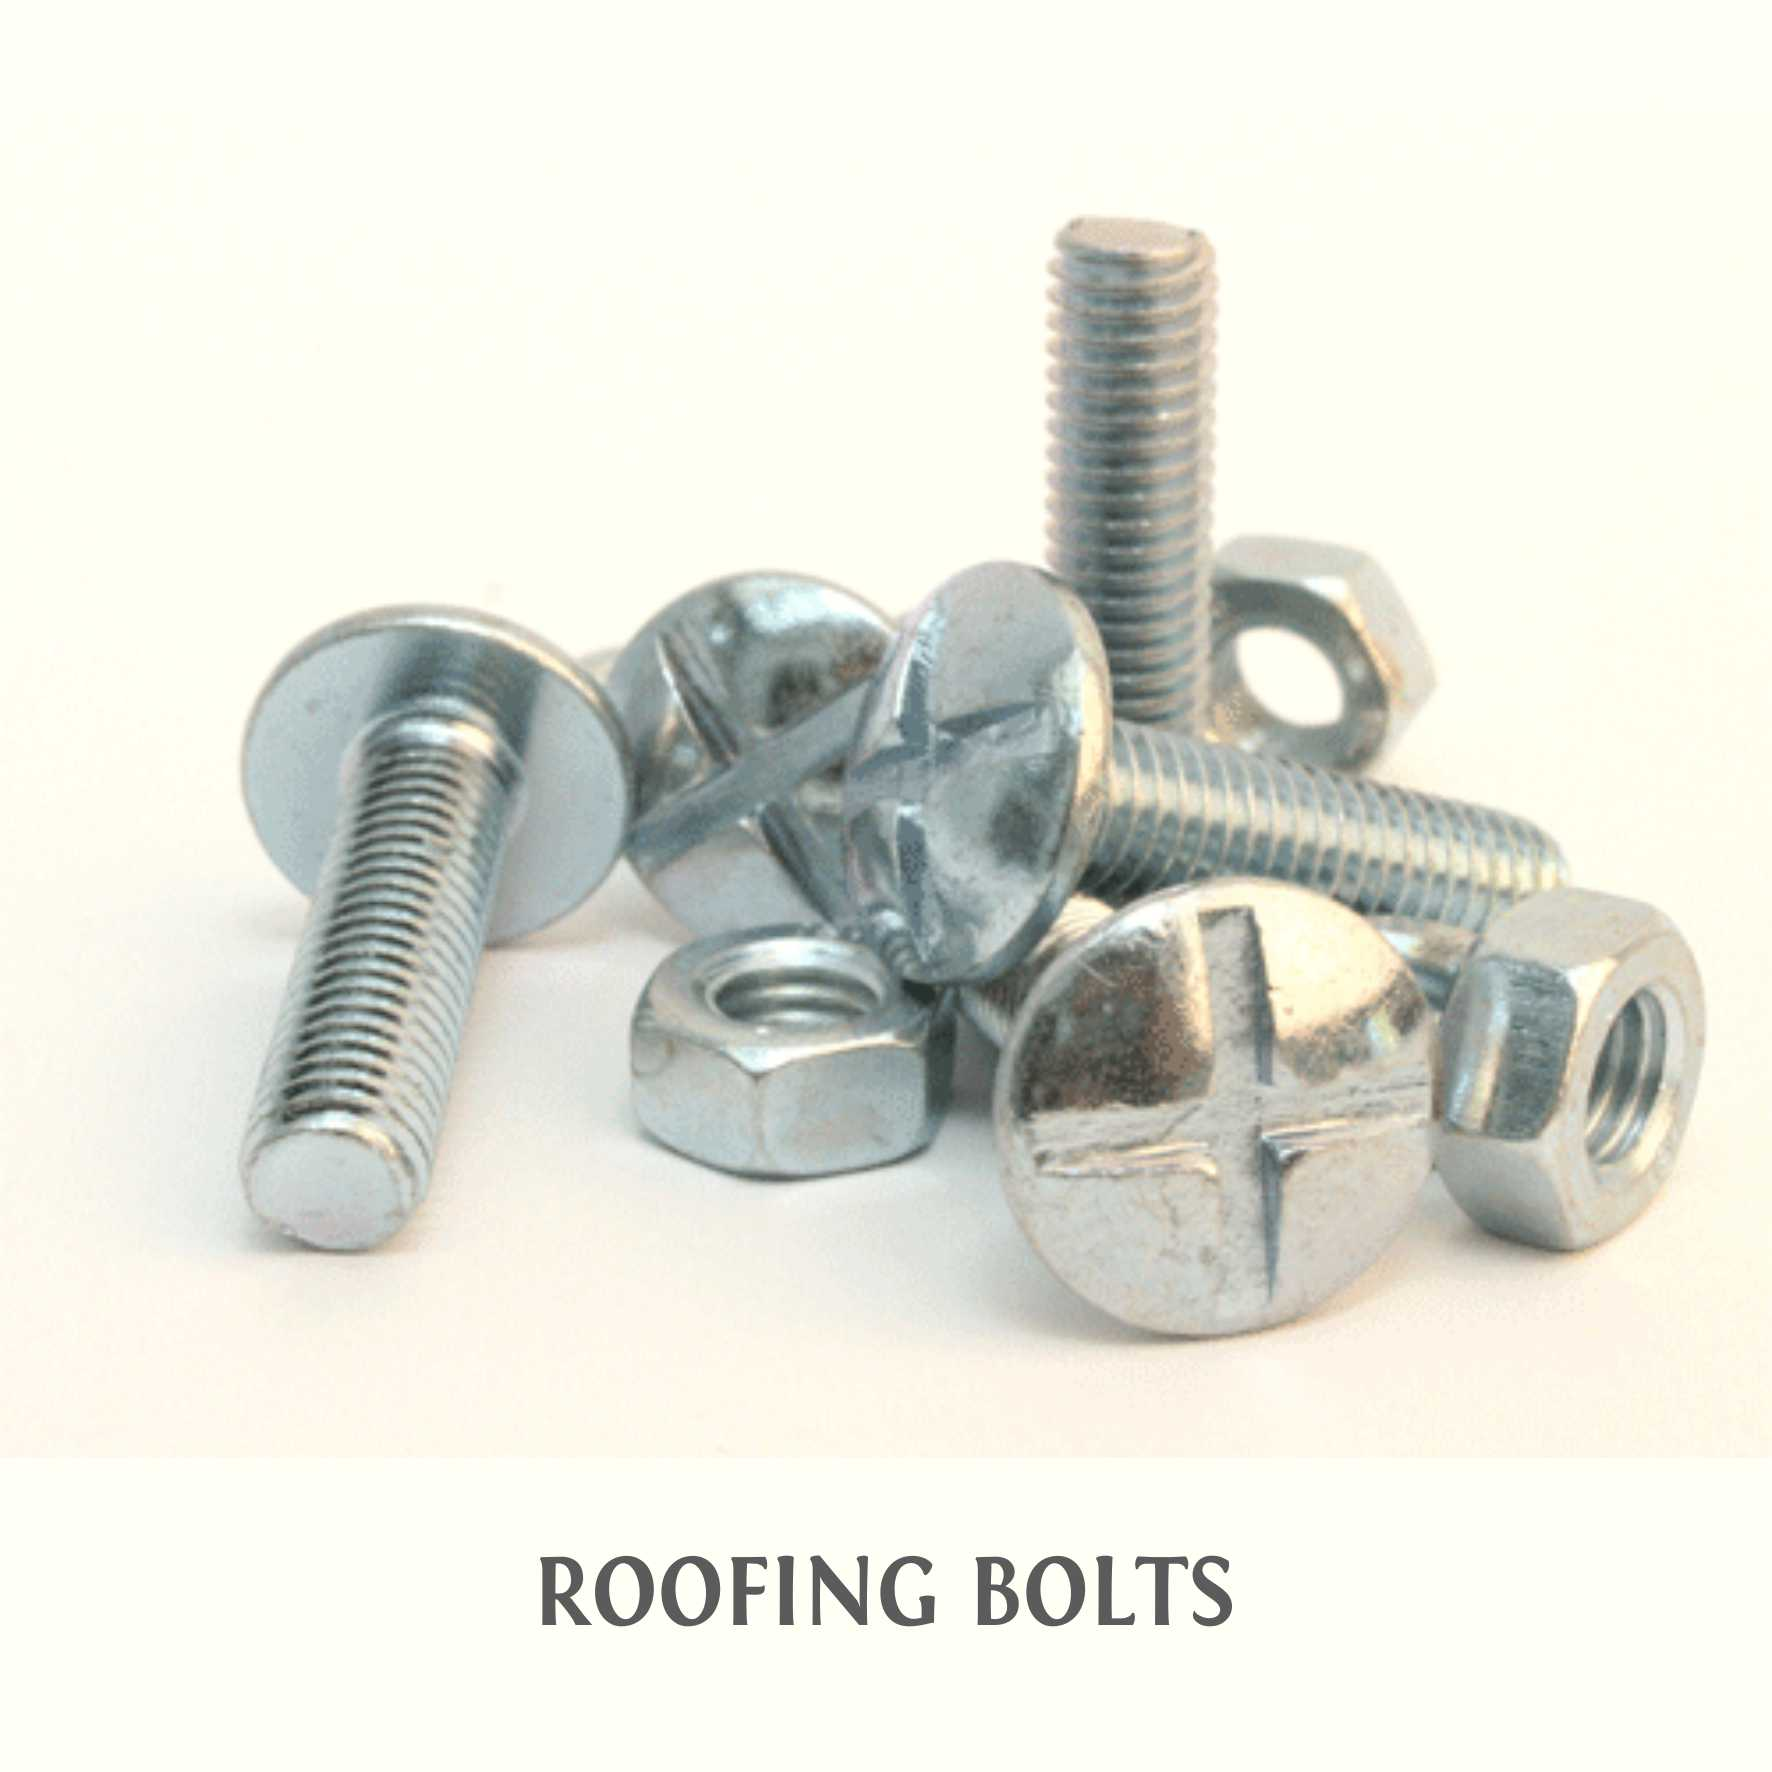 4-ROOFING BOLTS